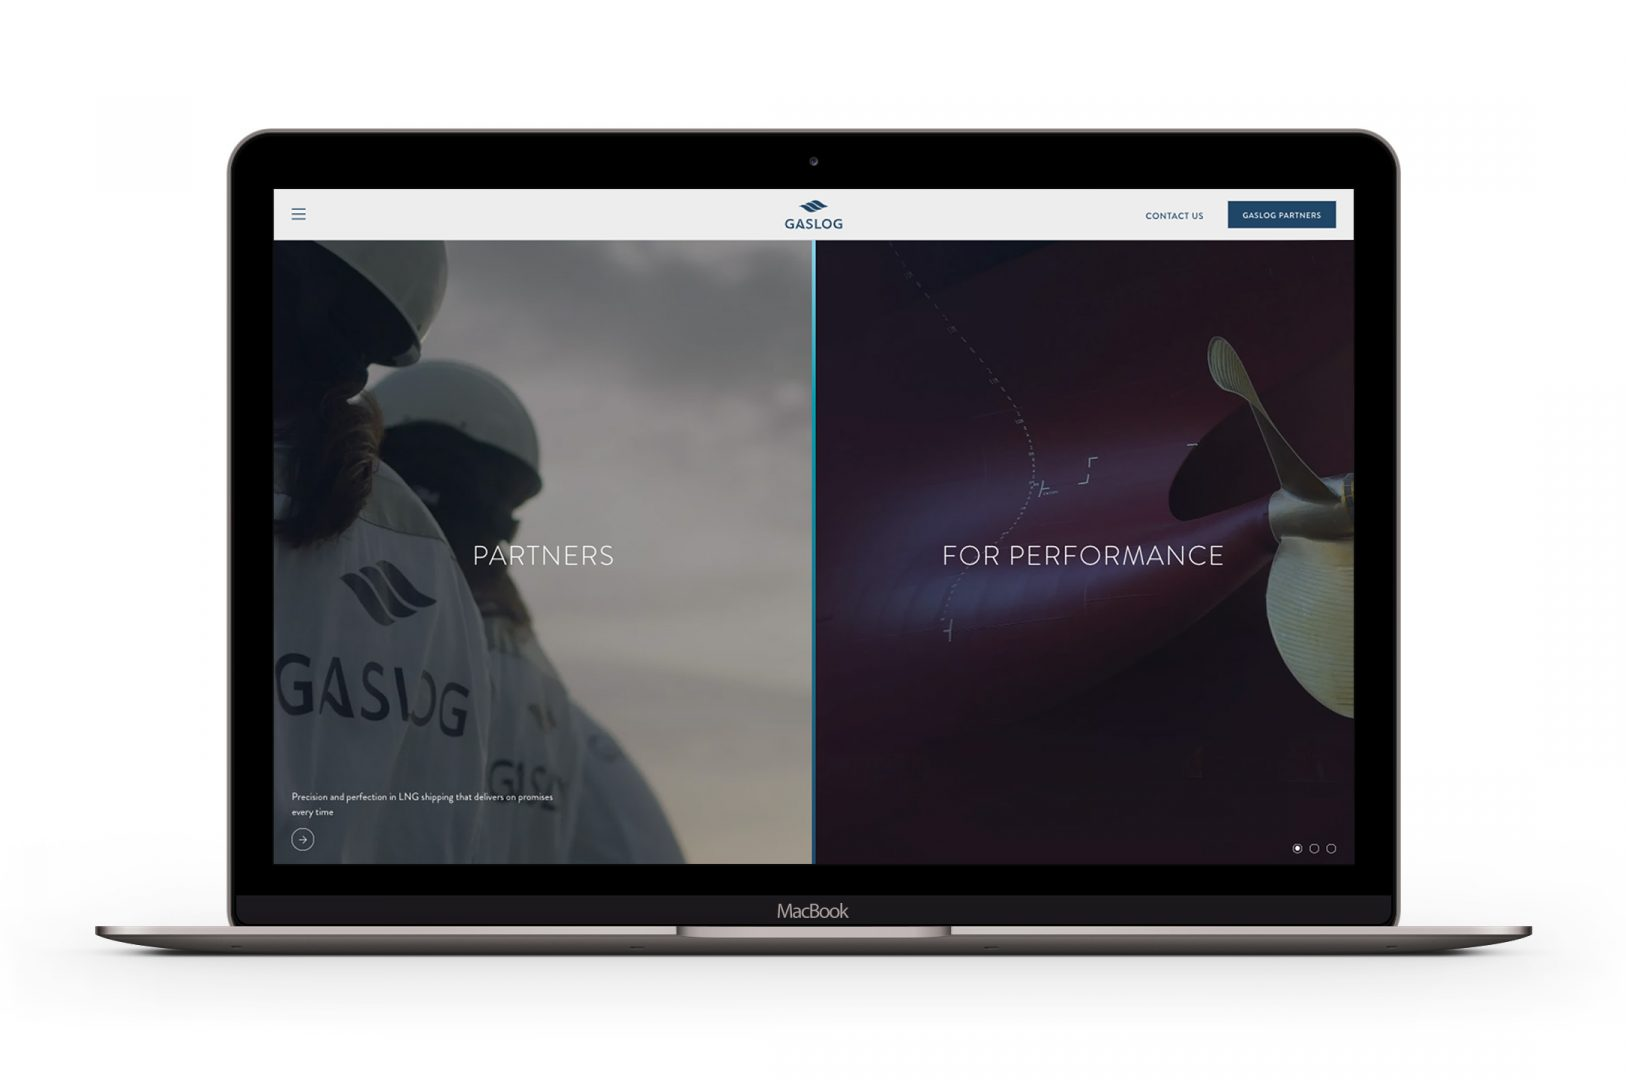 Gaslog-Macbook-Homepage